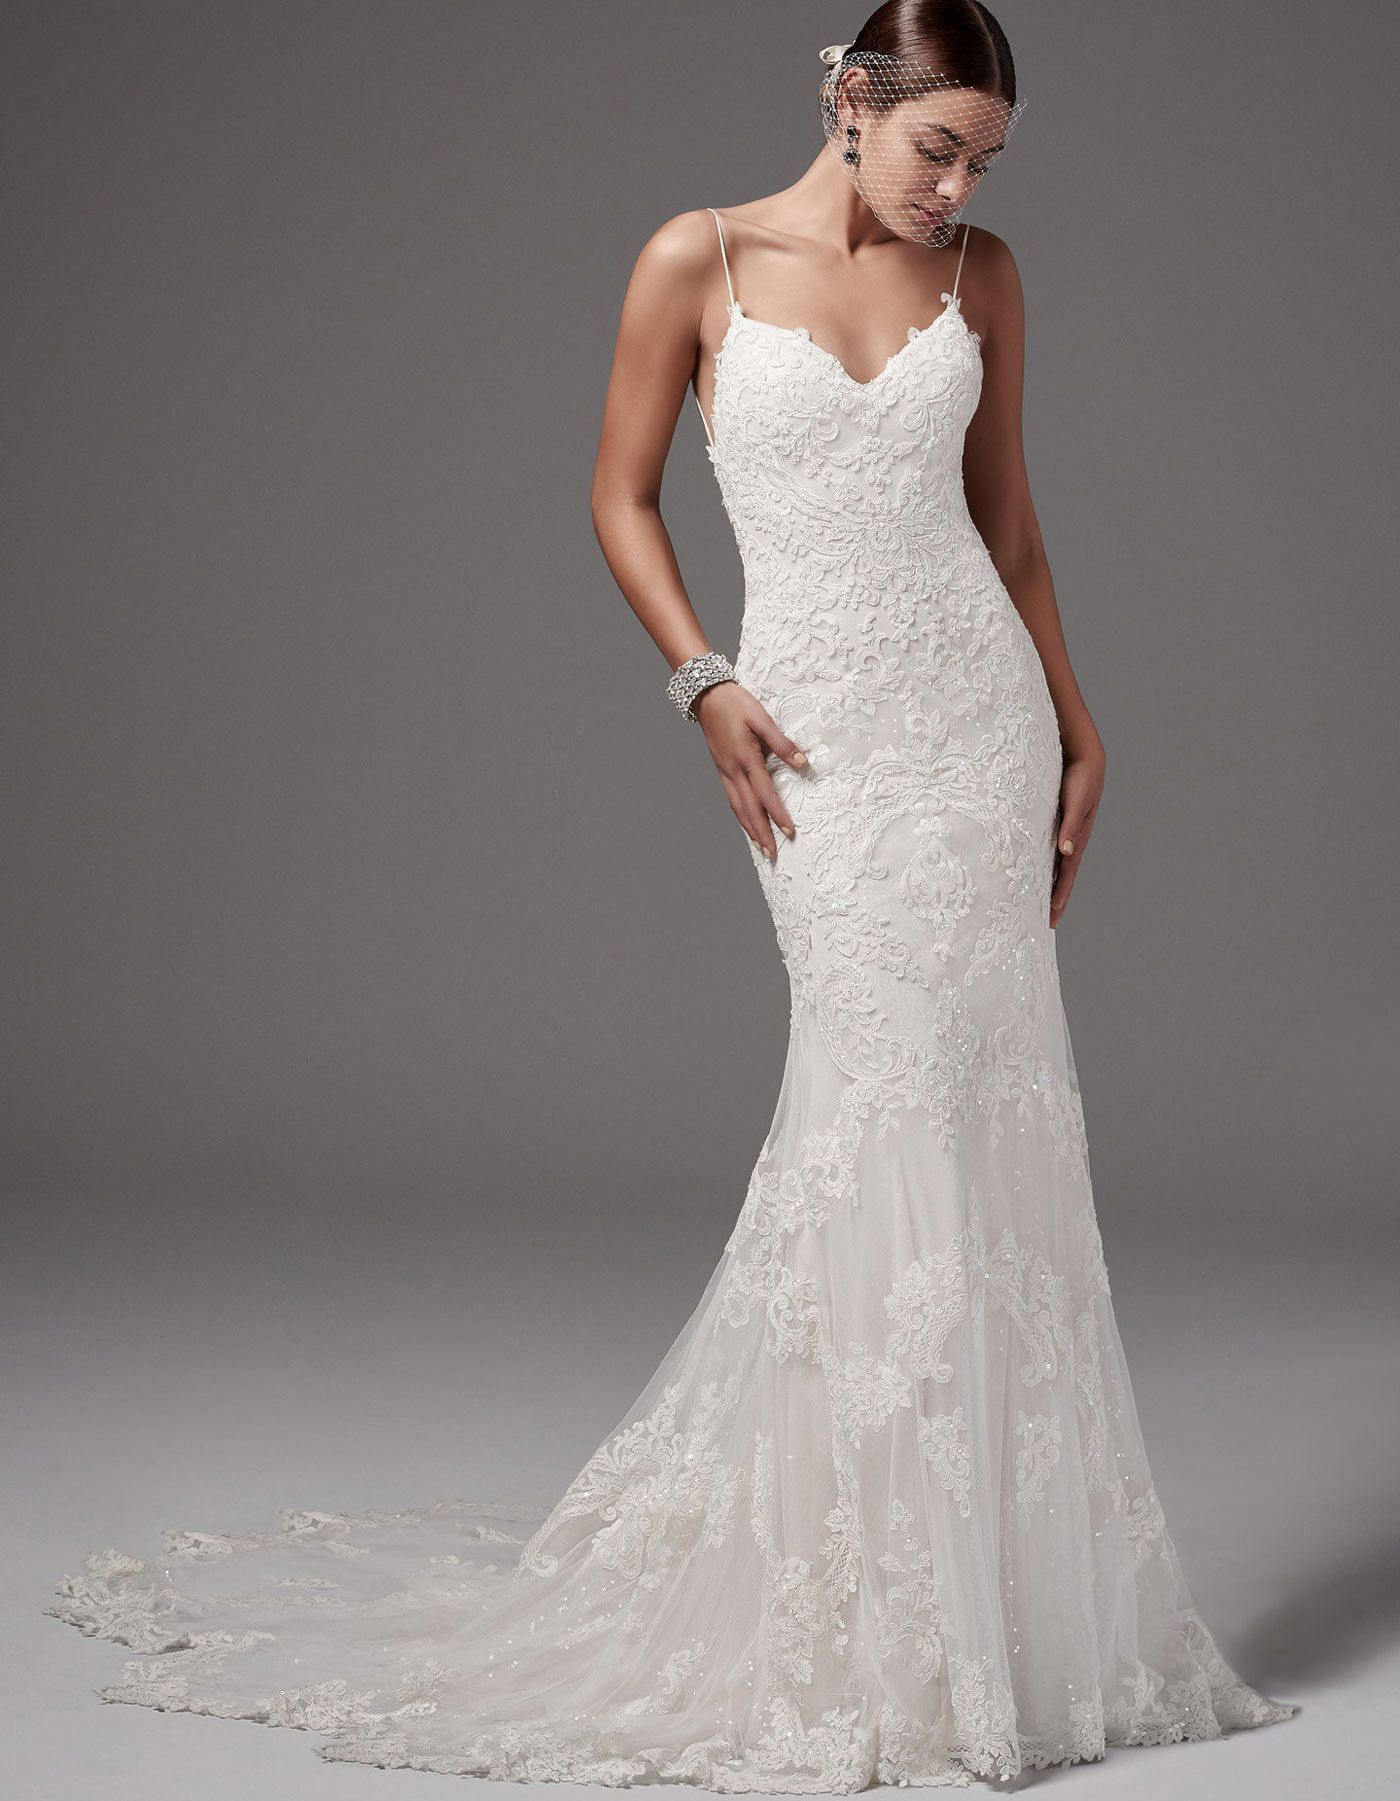 Bristol By Sottero And Midgley Available Exclusive To Raffaele Ciuca Melbourne Australia Rustic Wedding DressesTulle